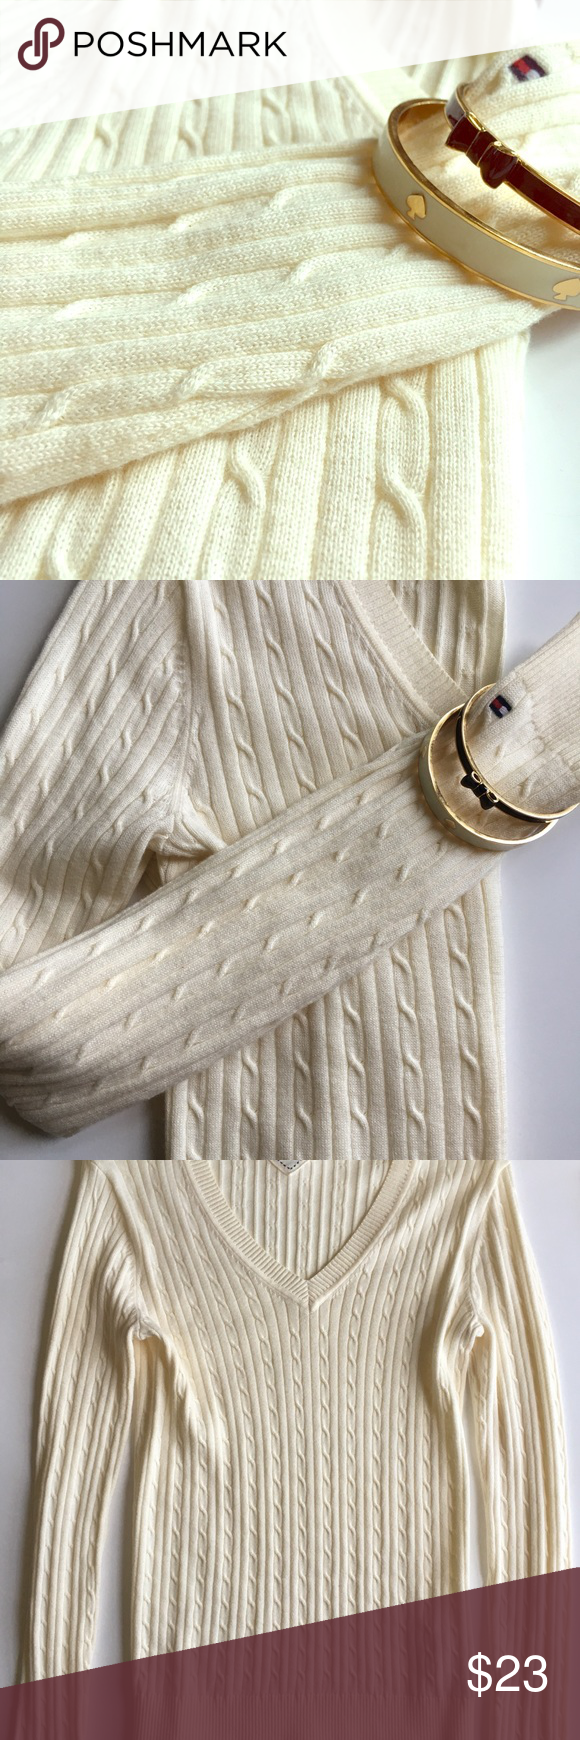 Tommy Hilfiger sweater Cream v-neck sweater, a classic wardrobe staple. Tommy Hilfiger Sweaters V-Necks